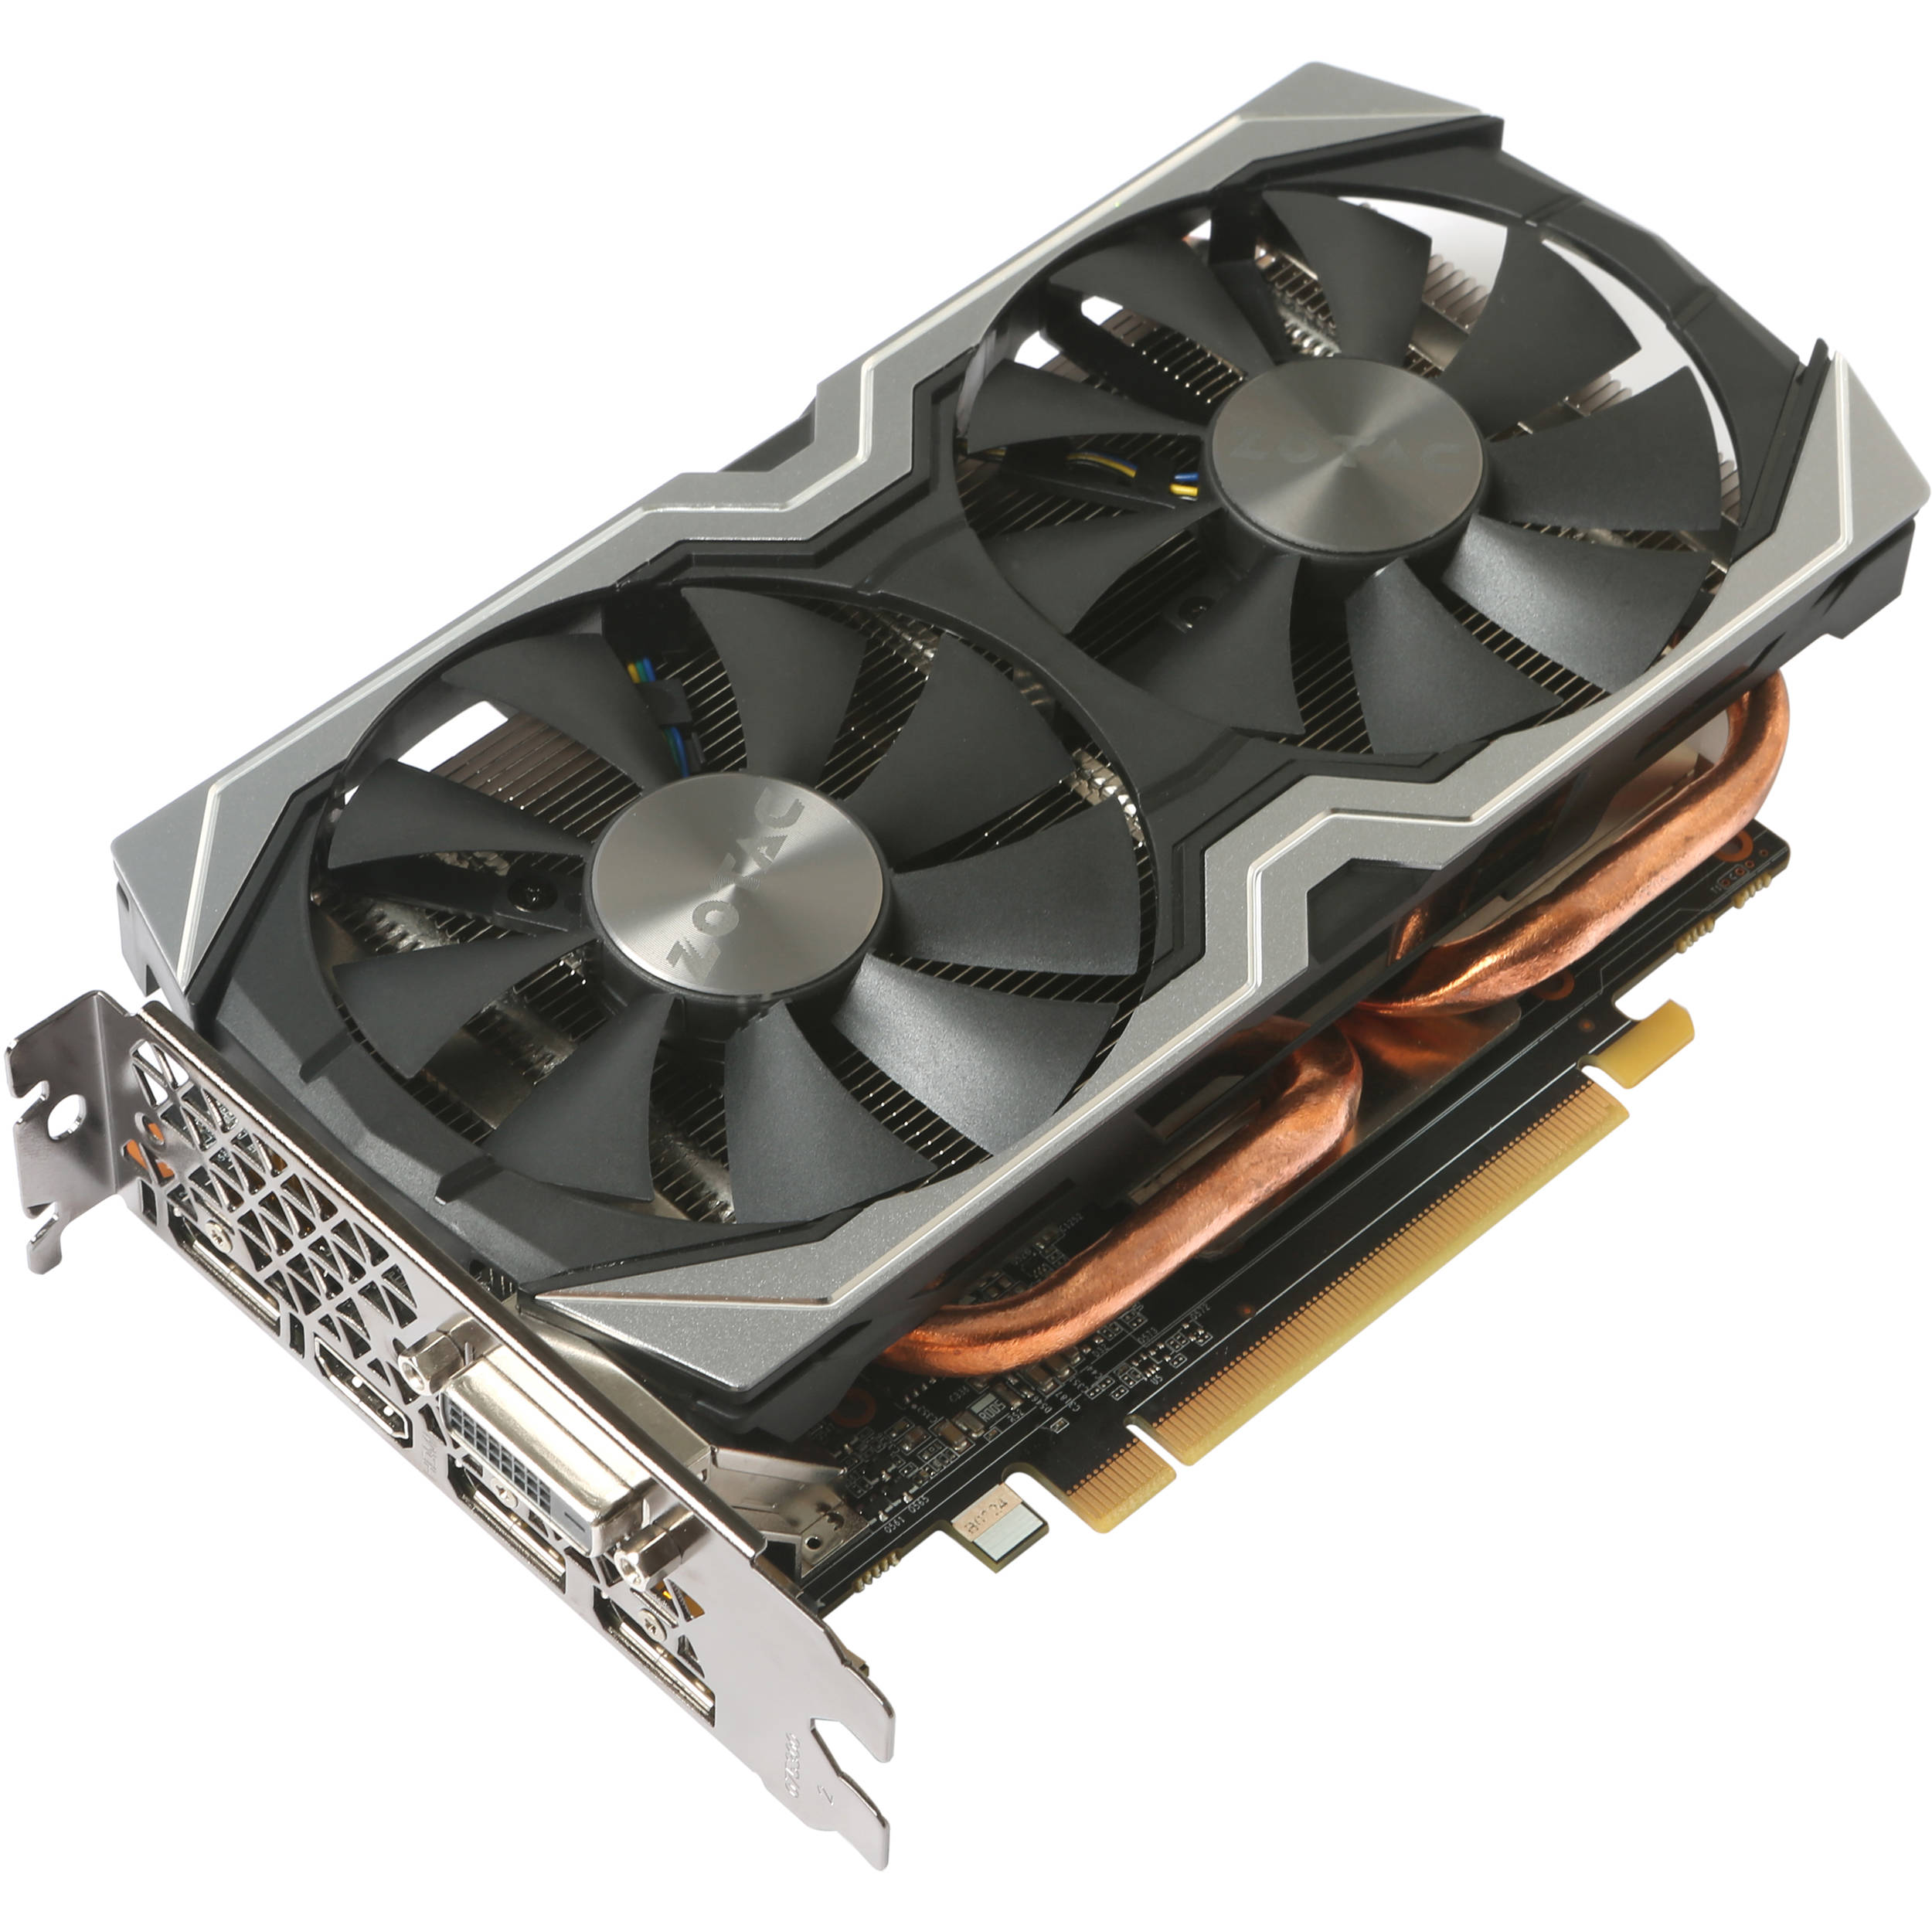 ZOTAC GeForce GTX 1060 AMP Edition Graphics Card